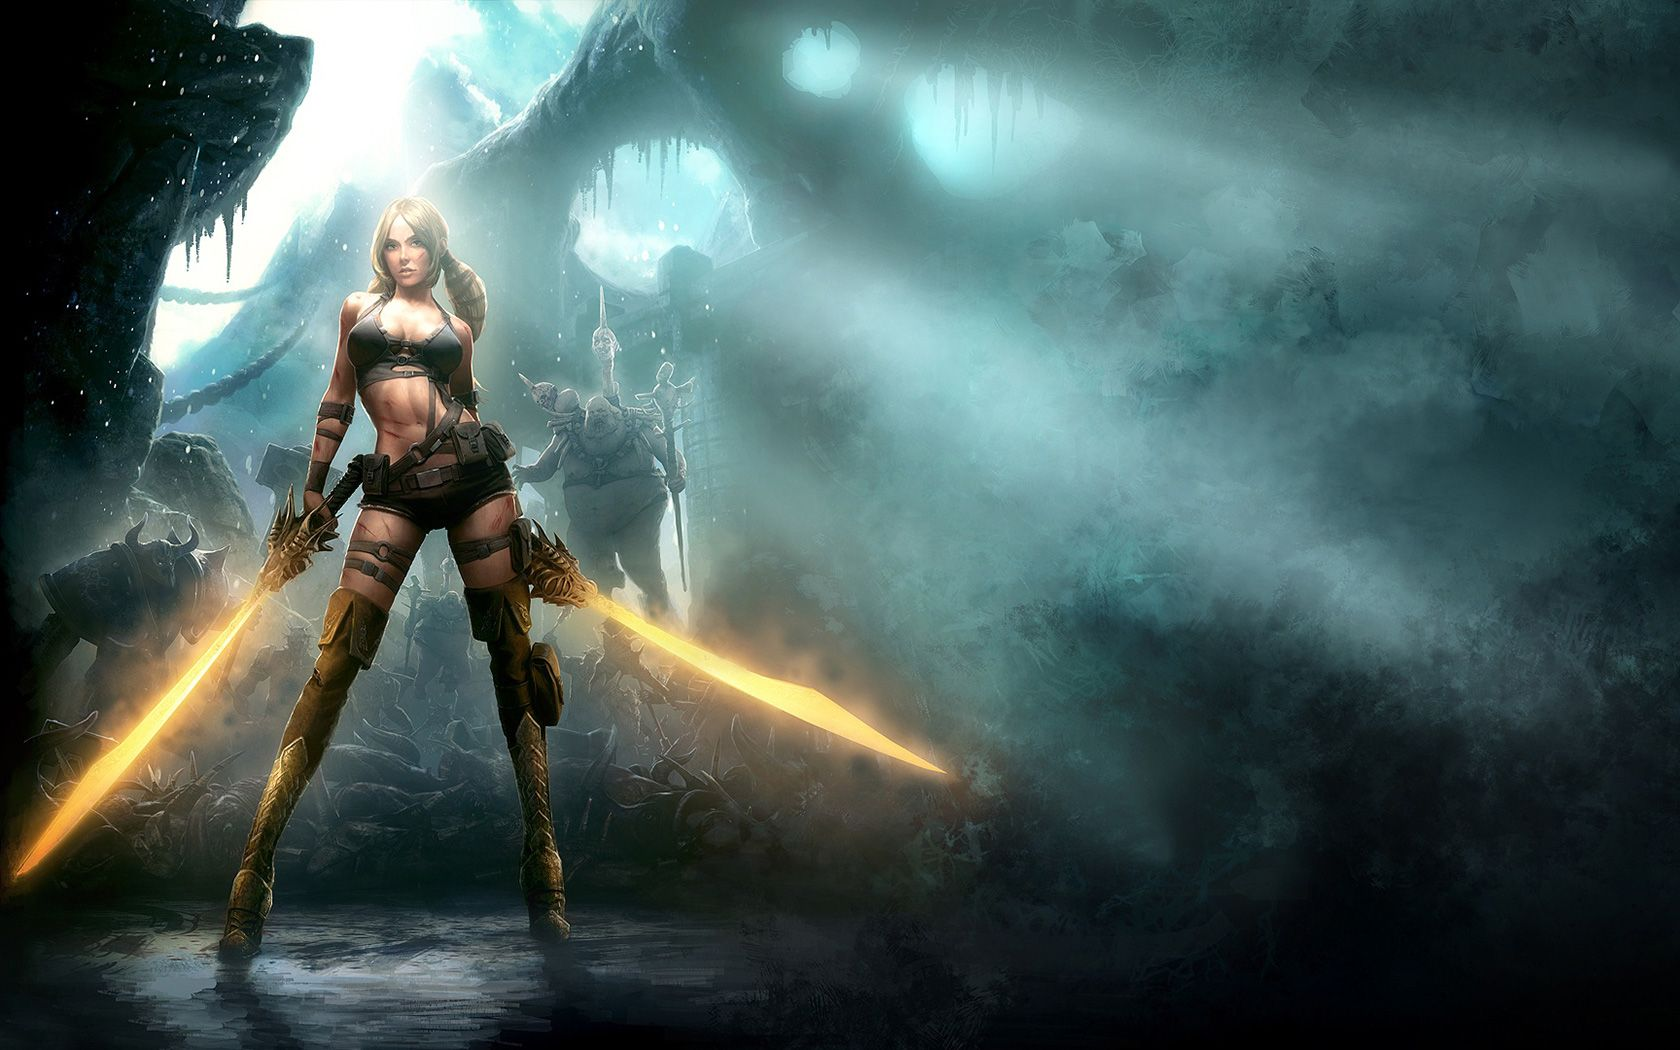 10 Latest Wallpaper Hd Games 2015 Full Hd 1080p For Pc: Video Game Wallpapers High Resolution